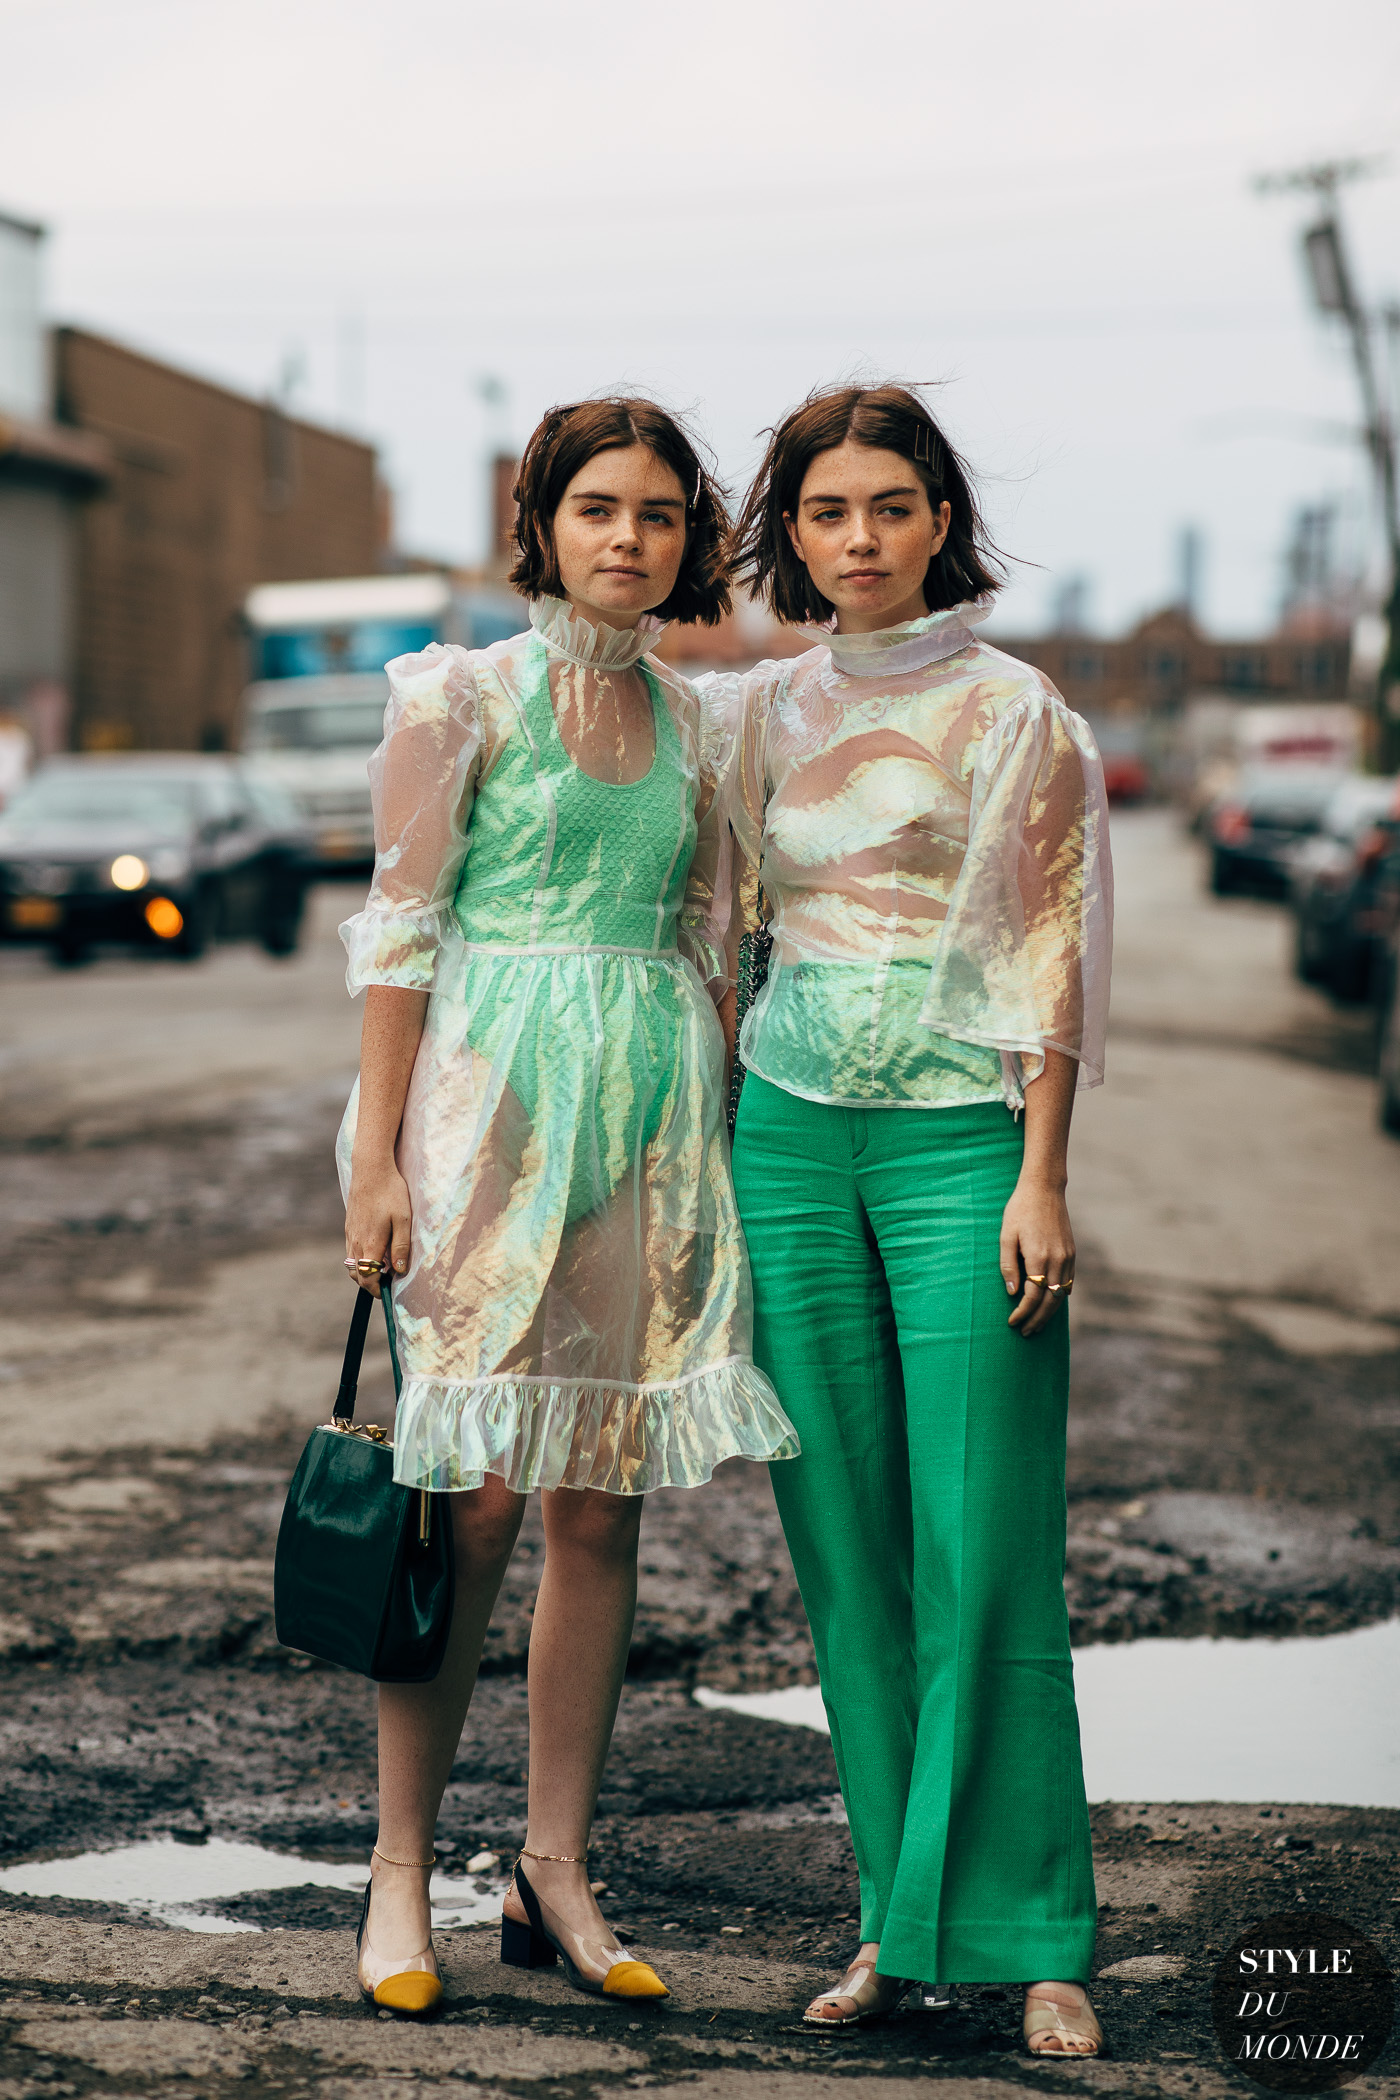 Reese and Molly Blutstein by STYLEDUMONDE Street Style Fashion Photography20180908_48A5944